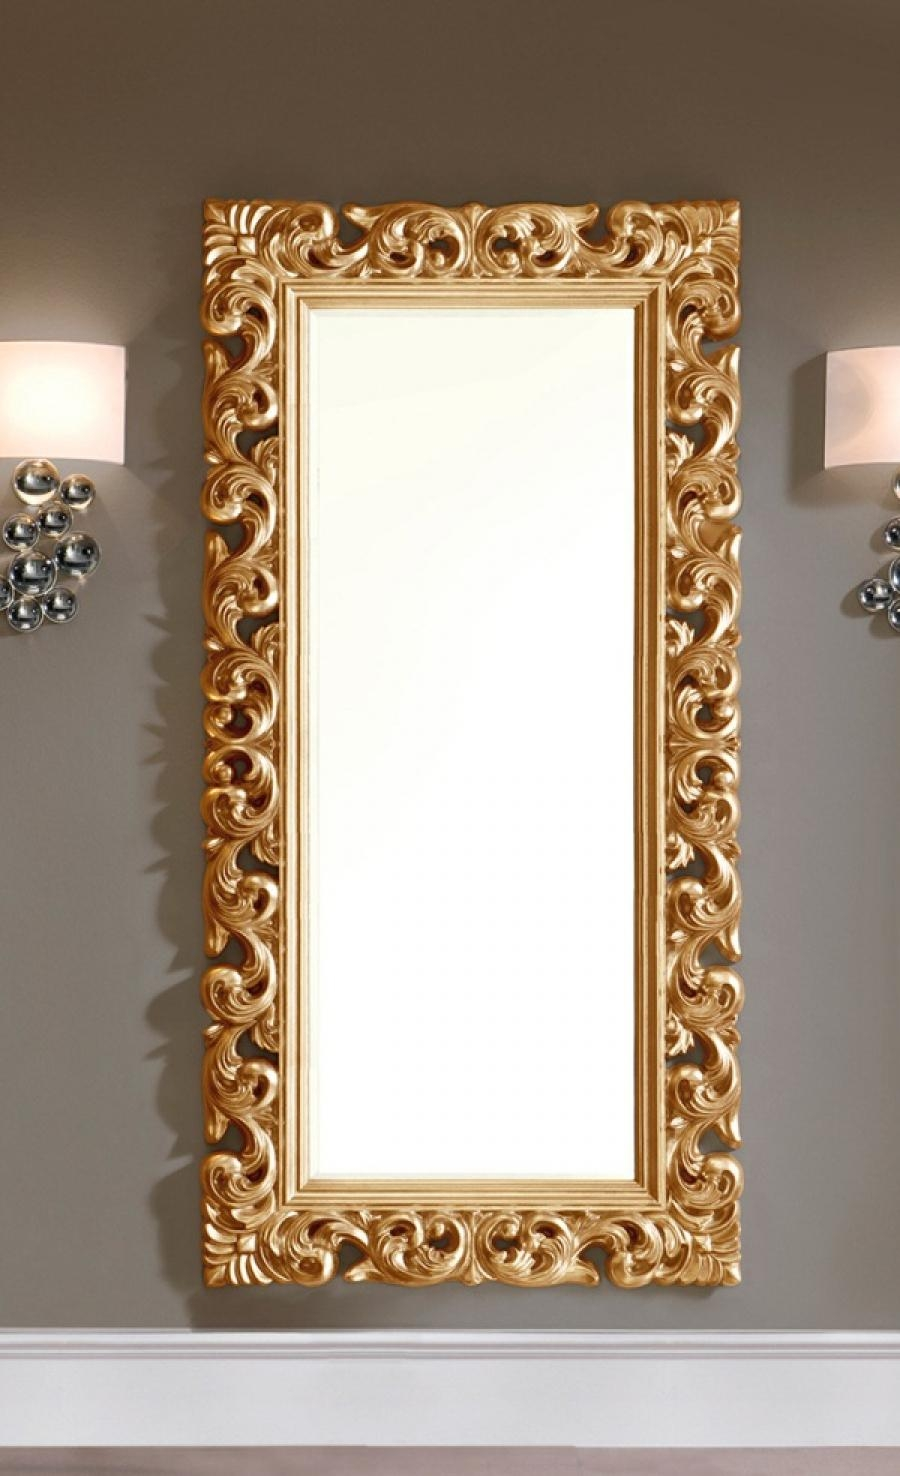 Large Modern Ornate Mirror In Gold Colour Finish For Ornate Mirror Large (Image 6 of 15)